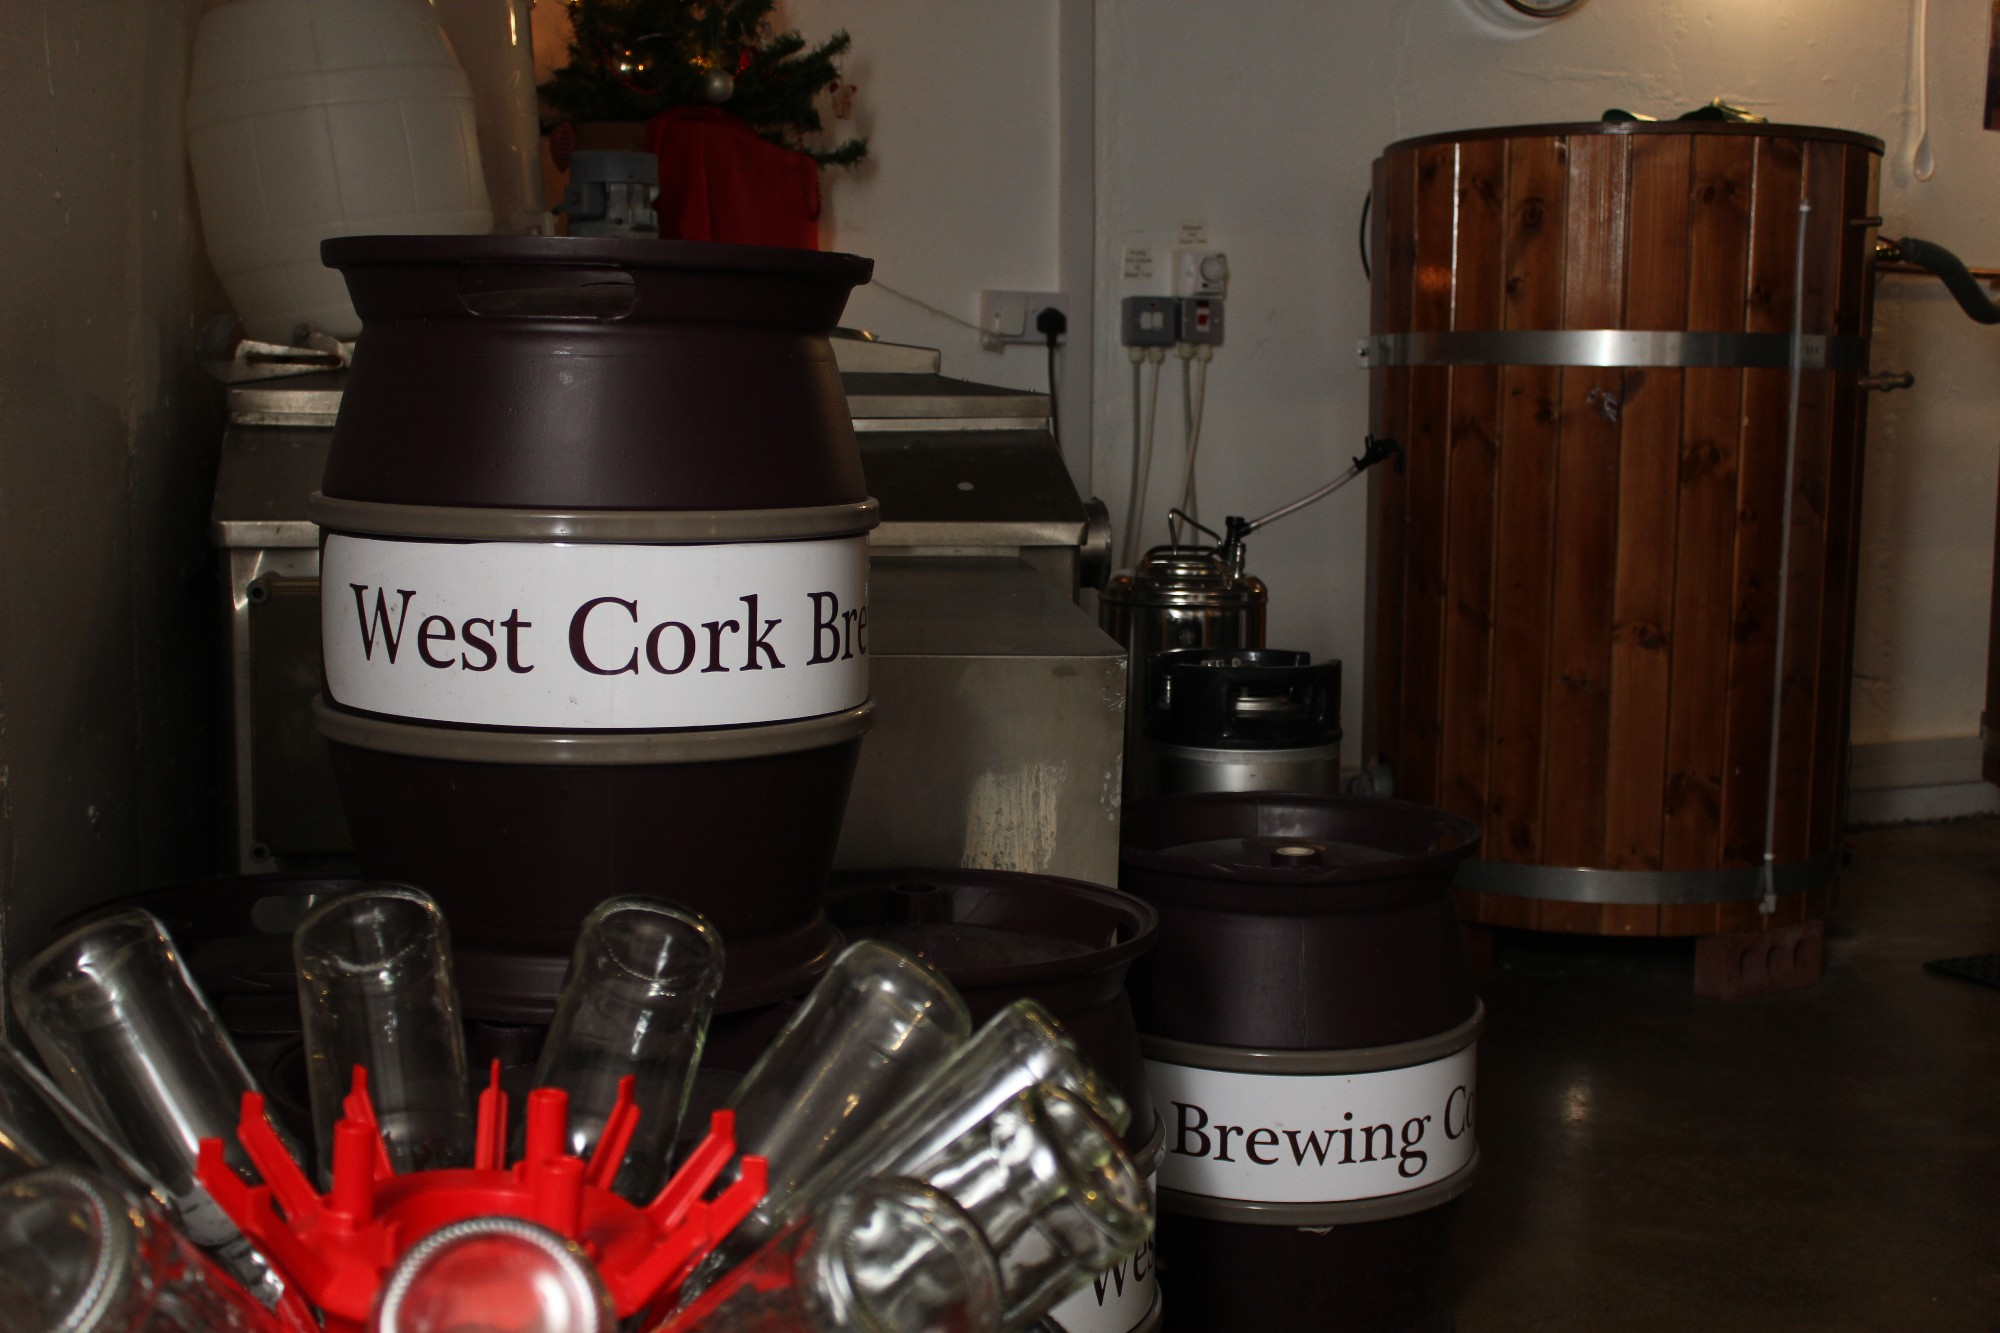 West Cork Brewing Co